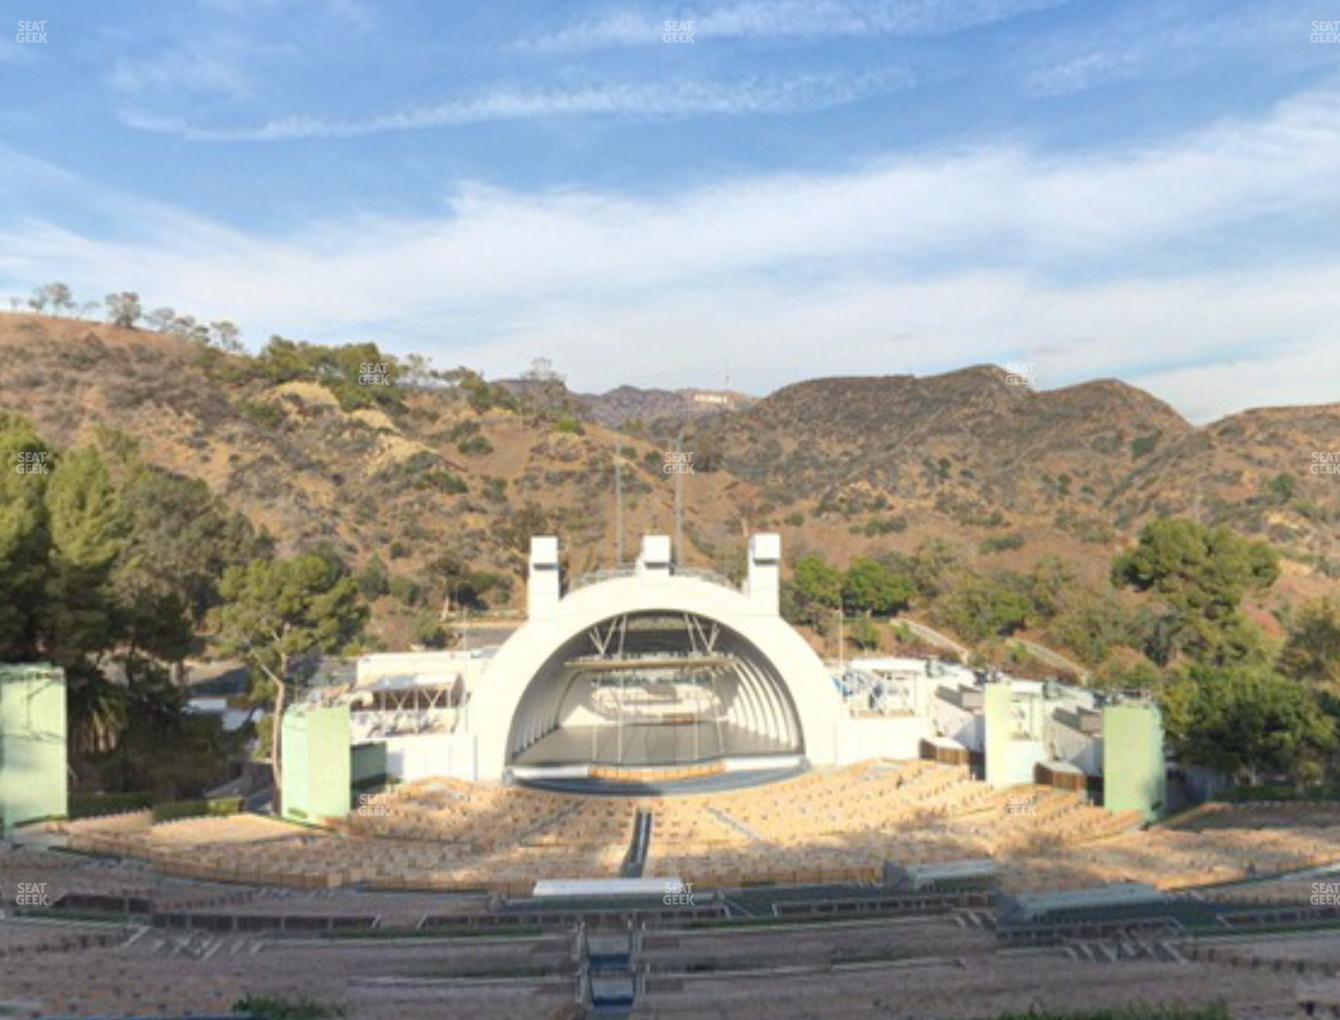 Concert at Hollywood Bowl Section T 1 View